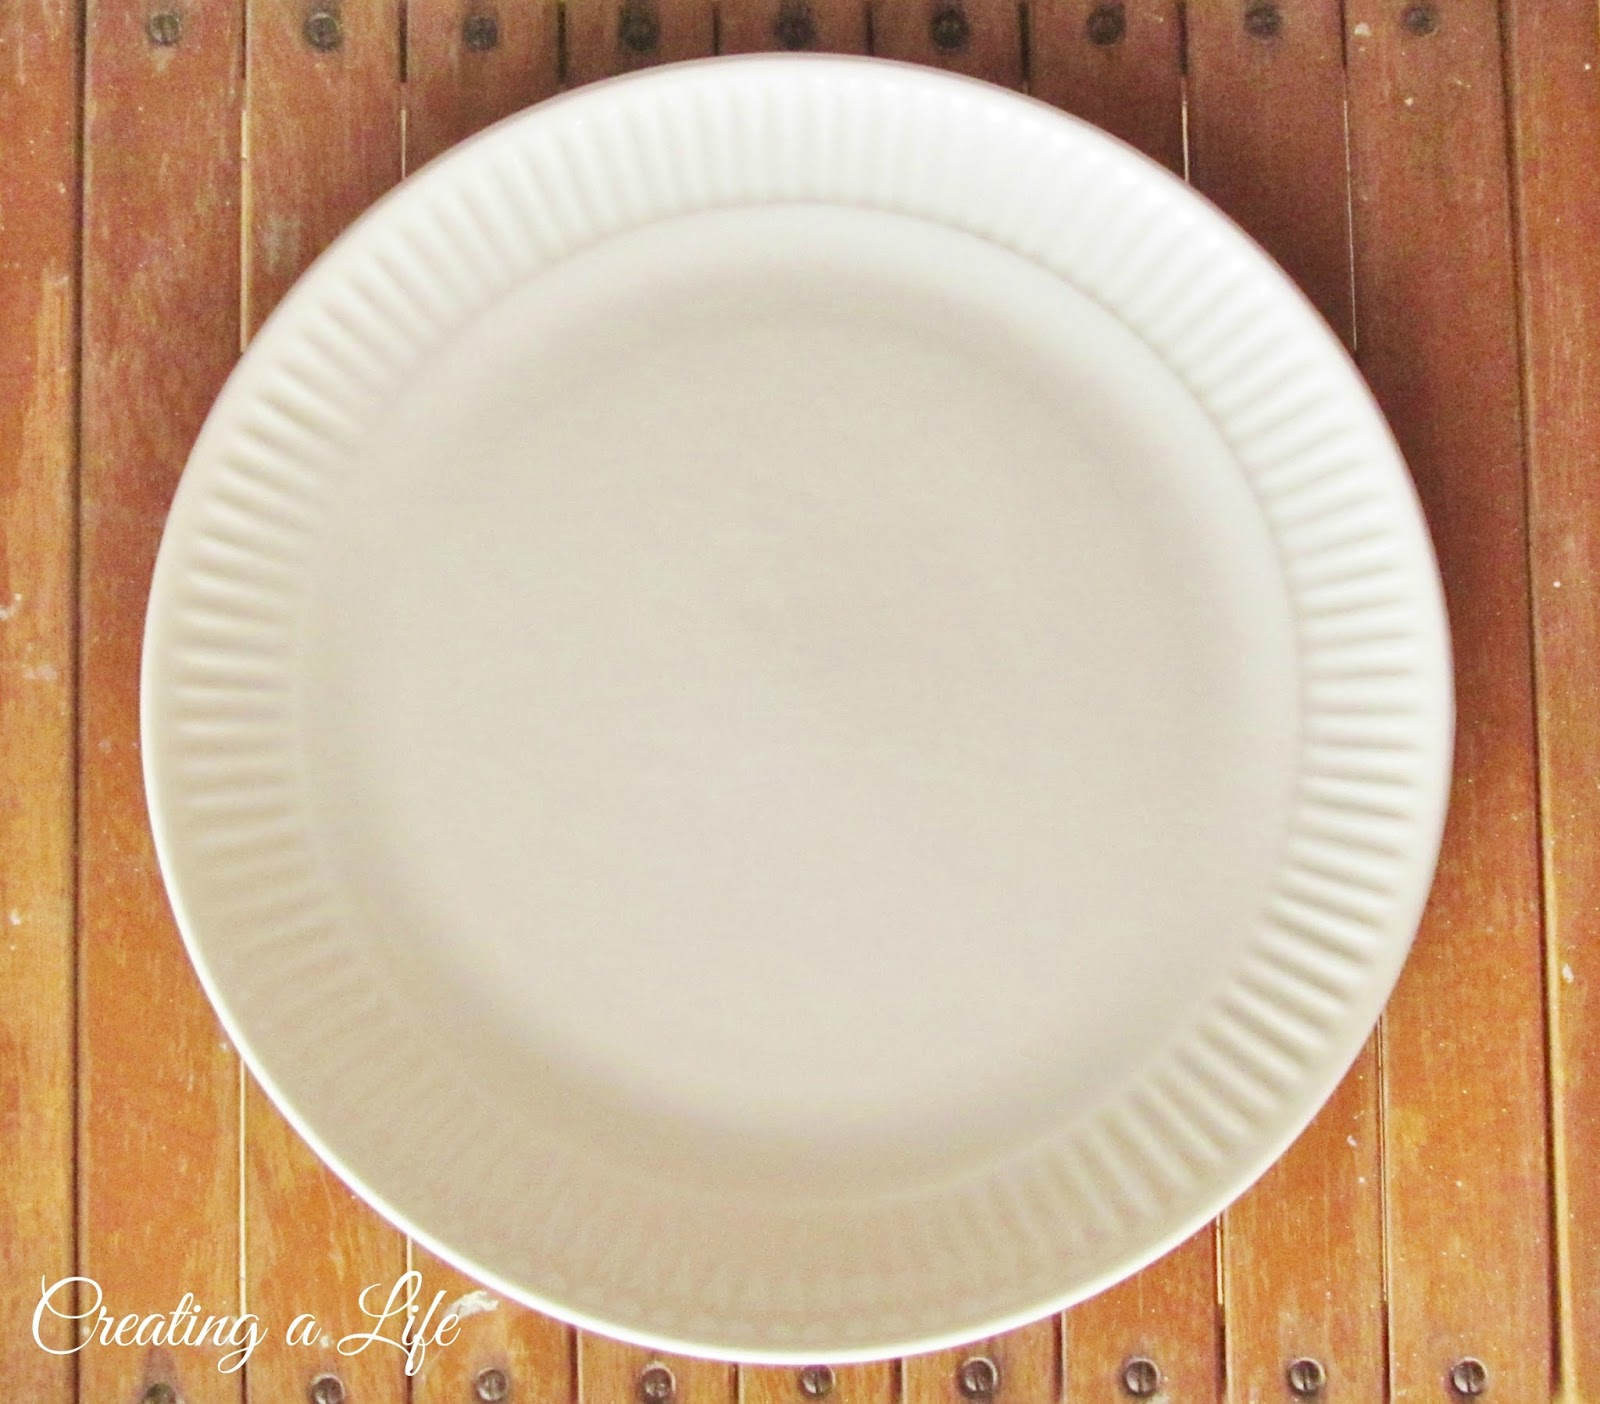 Creating A Life: White Plates and Promises